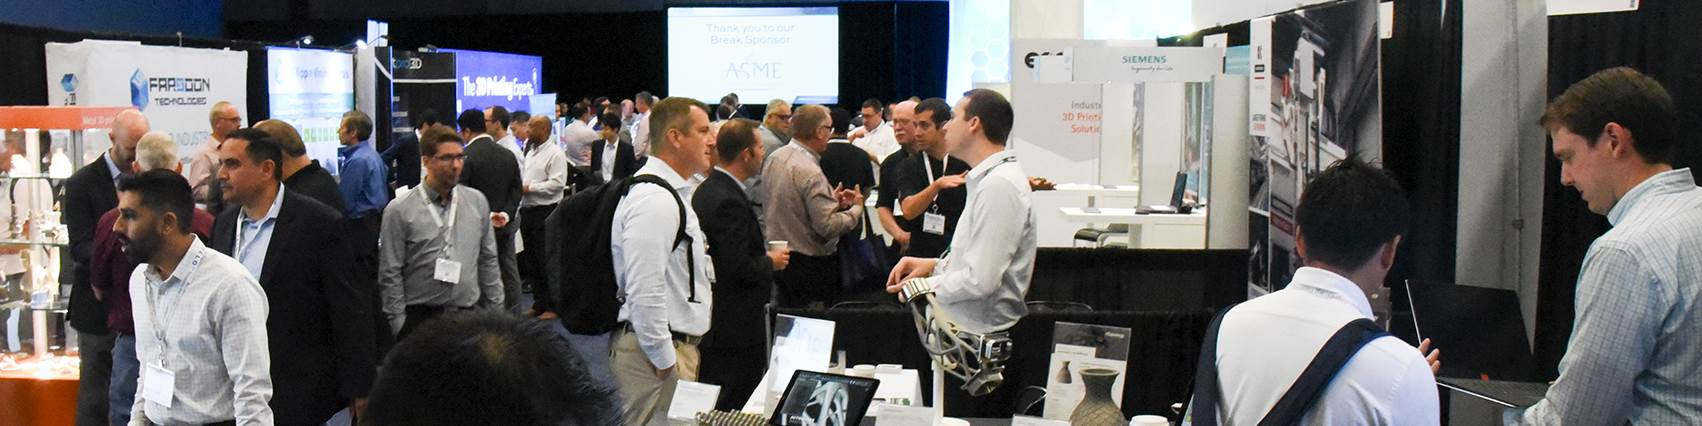 Registration is now open for the Additive Manufacturing Conference + Expo 2021 set for Oct. 12-14, 2021, in Cincinnati, Ohio.